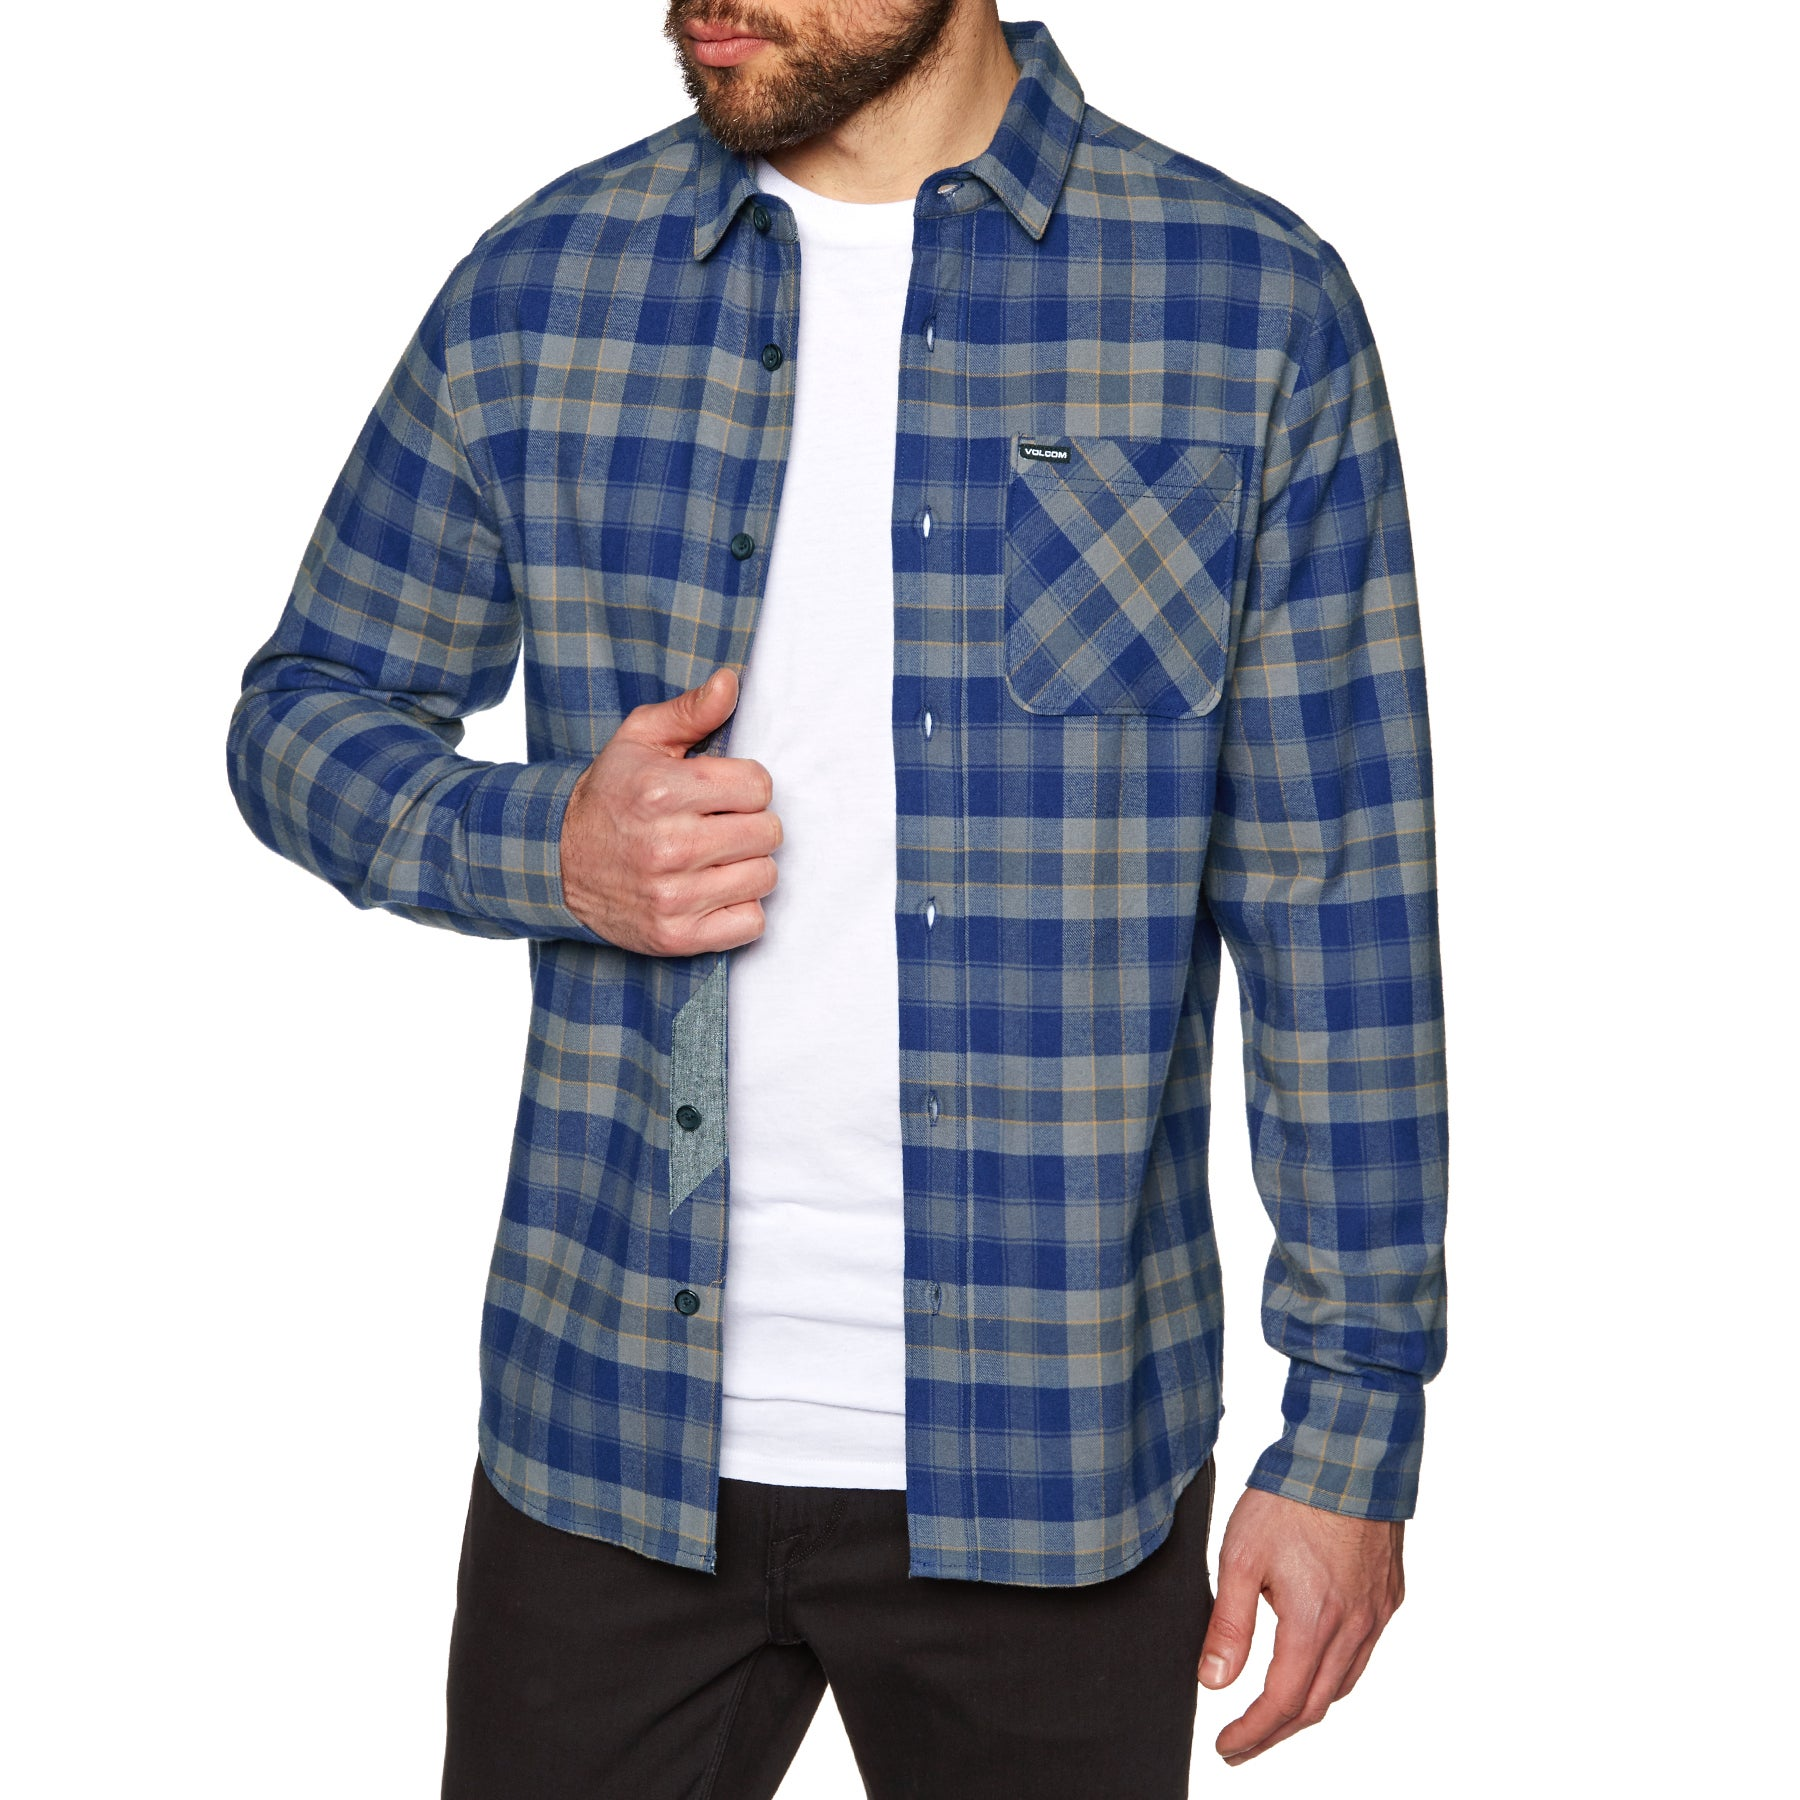 Volcom Caden Plaid Shirt - Matured Blue